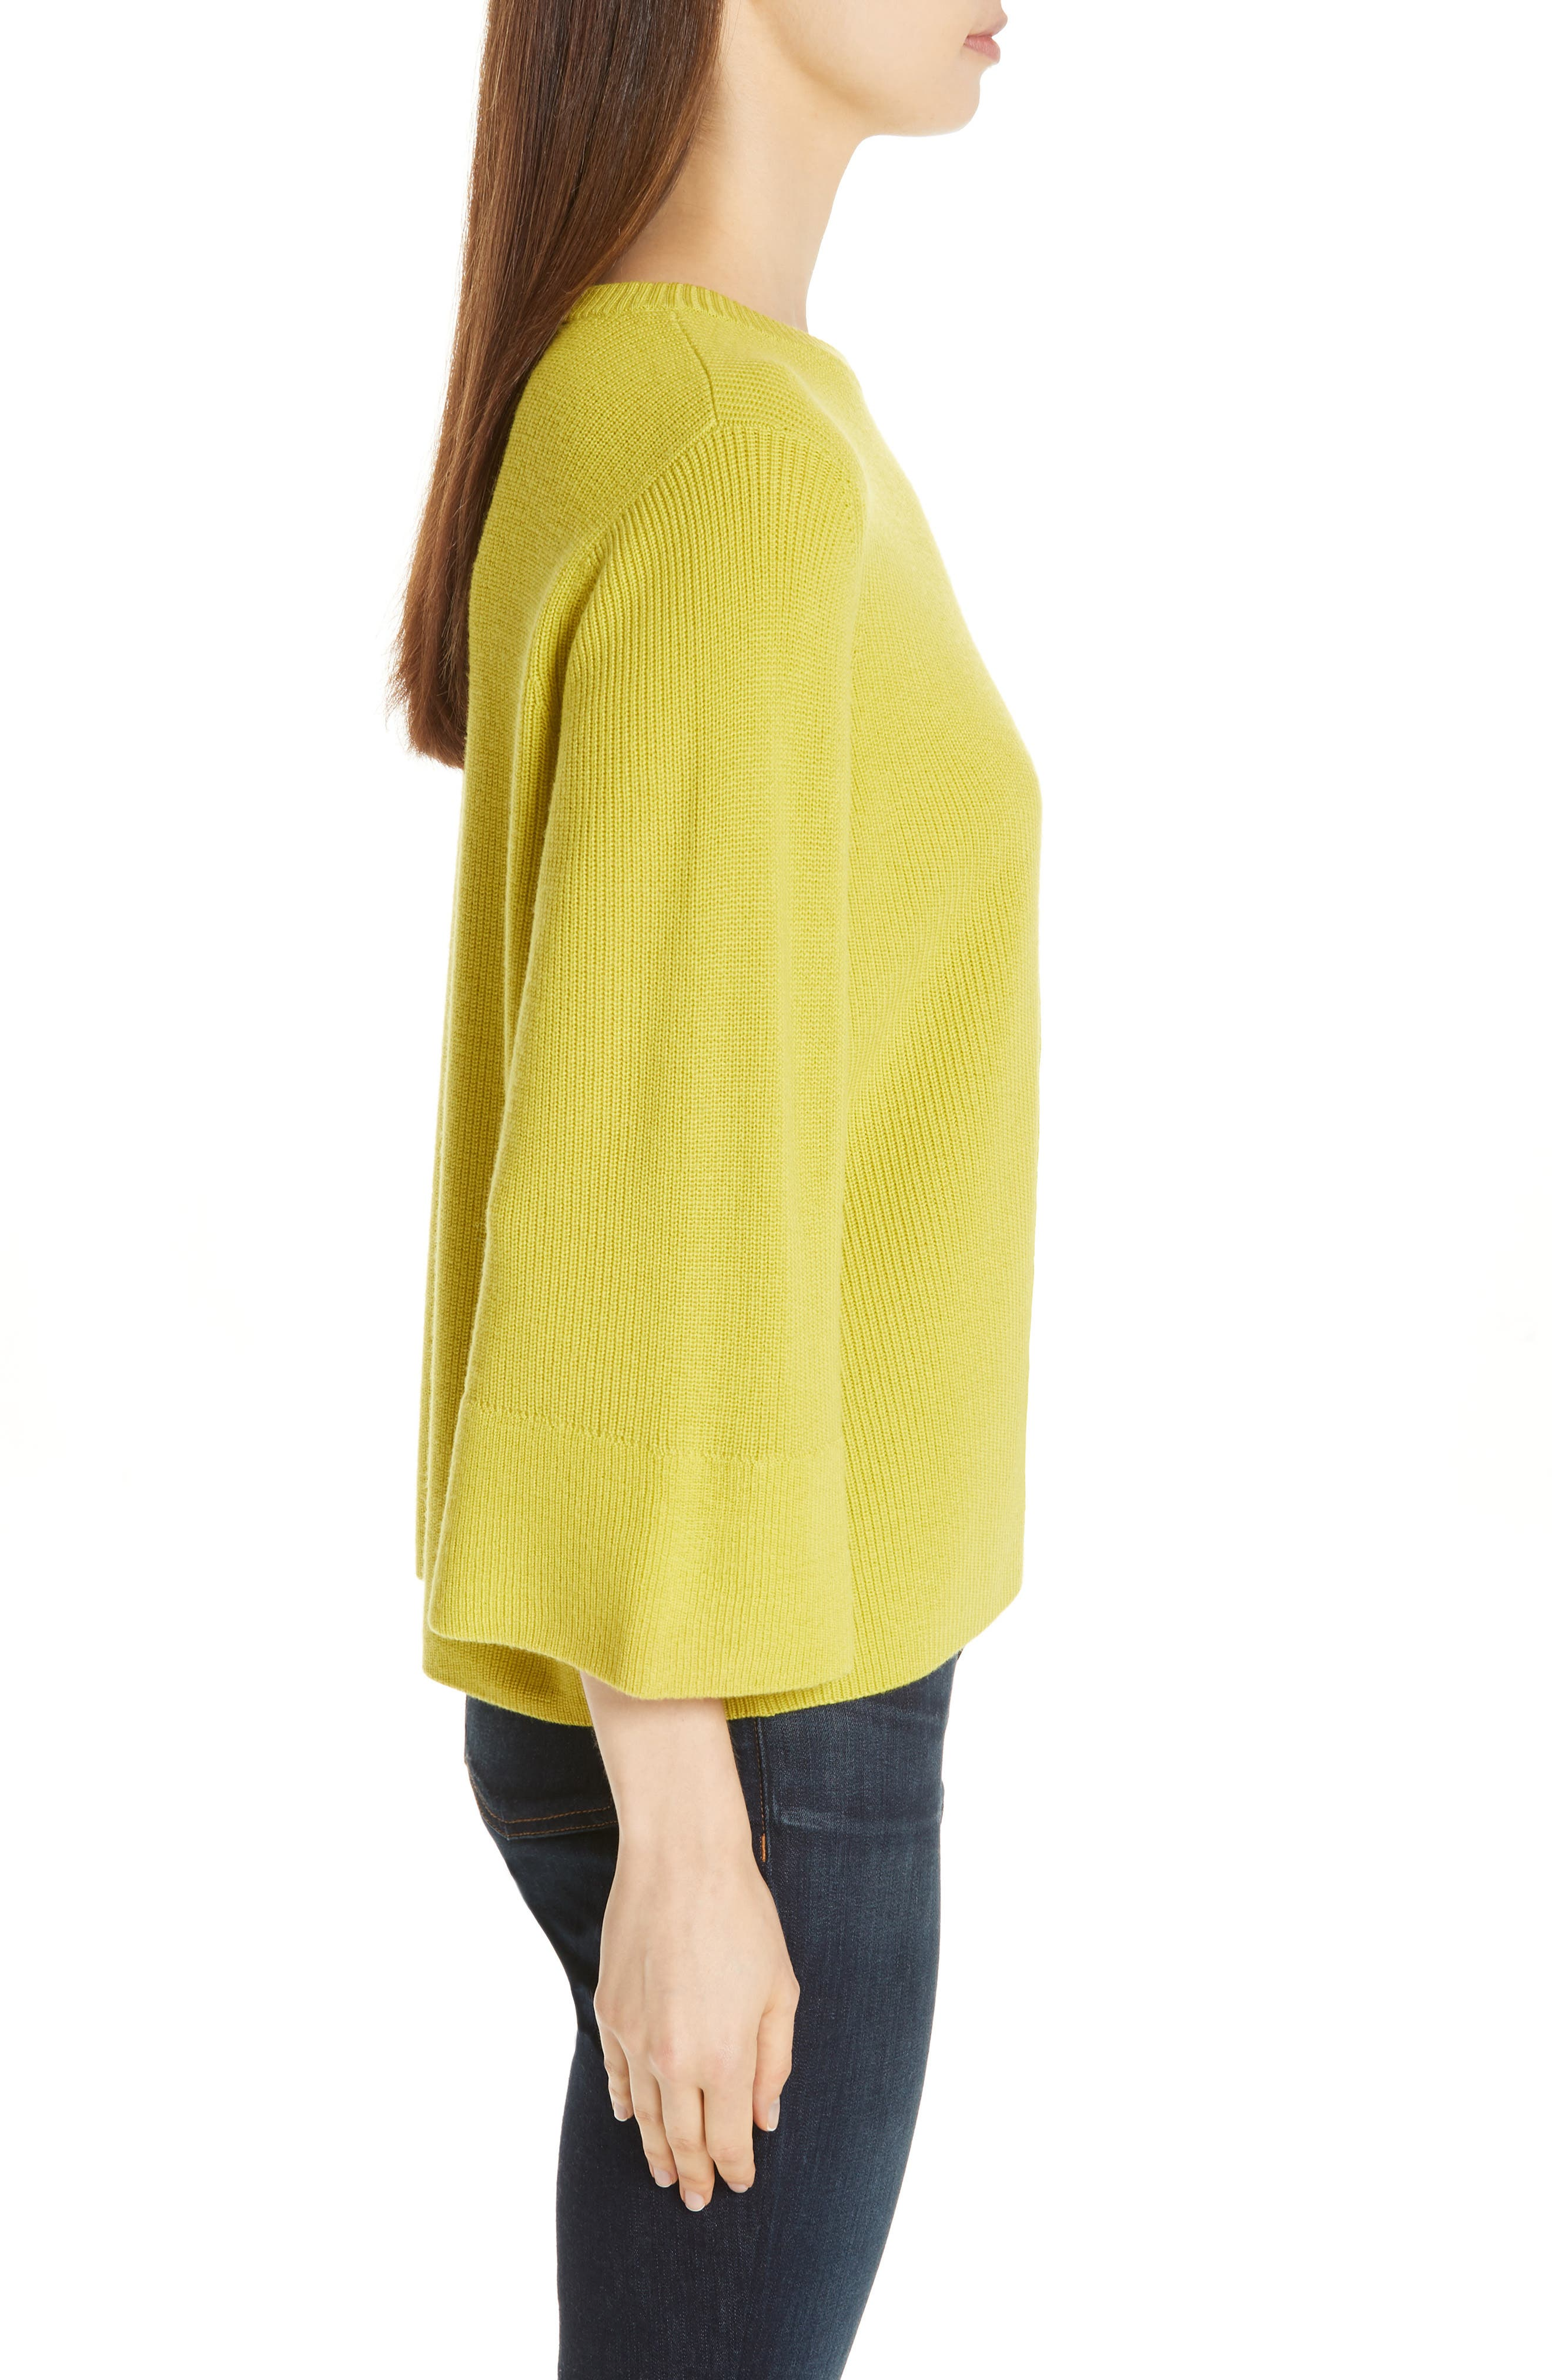 EILEEN FISHER, Three Quarter Sleeve Sweater, Alternate thumbnail 3, color, VERBENA